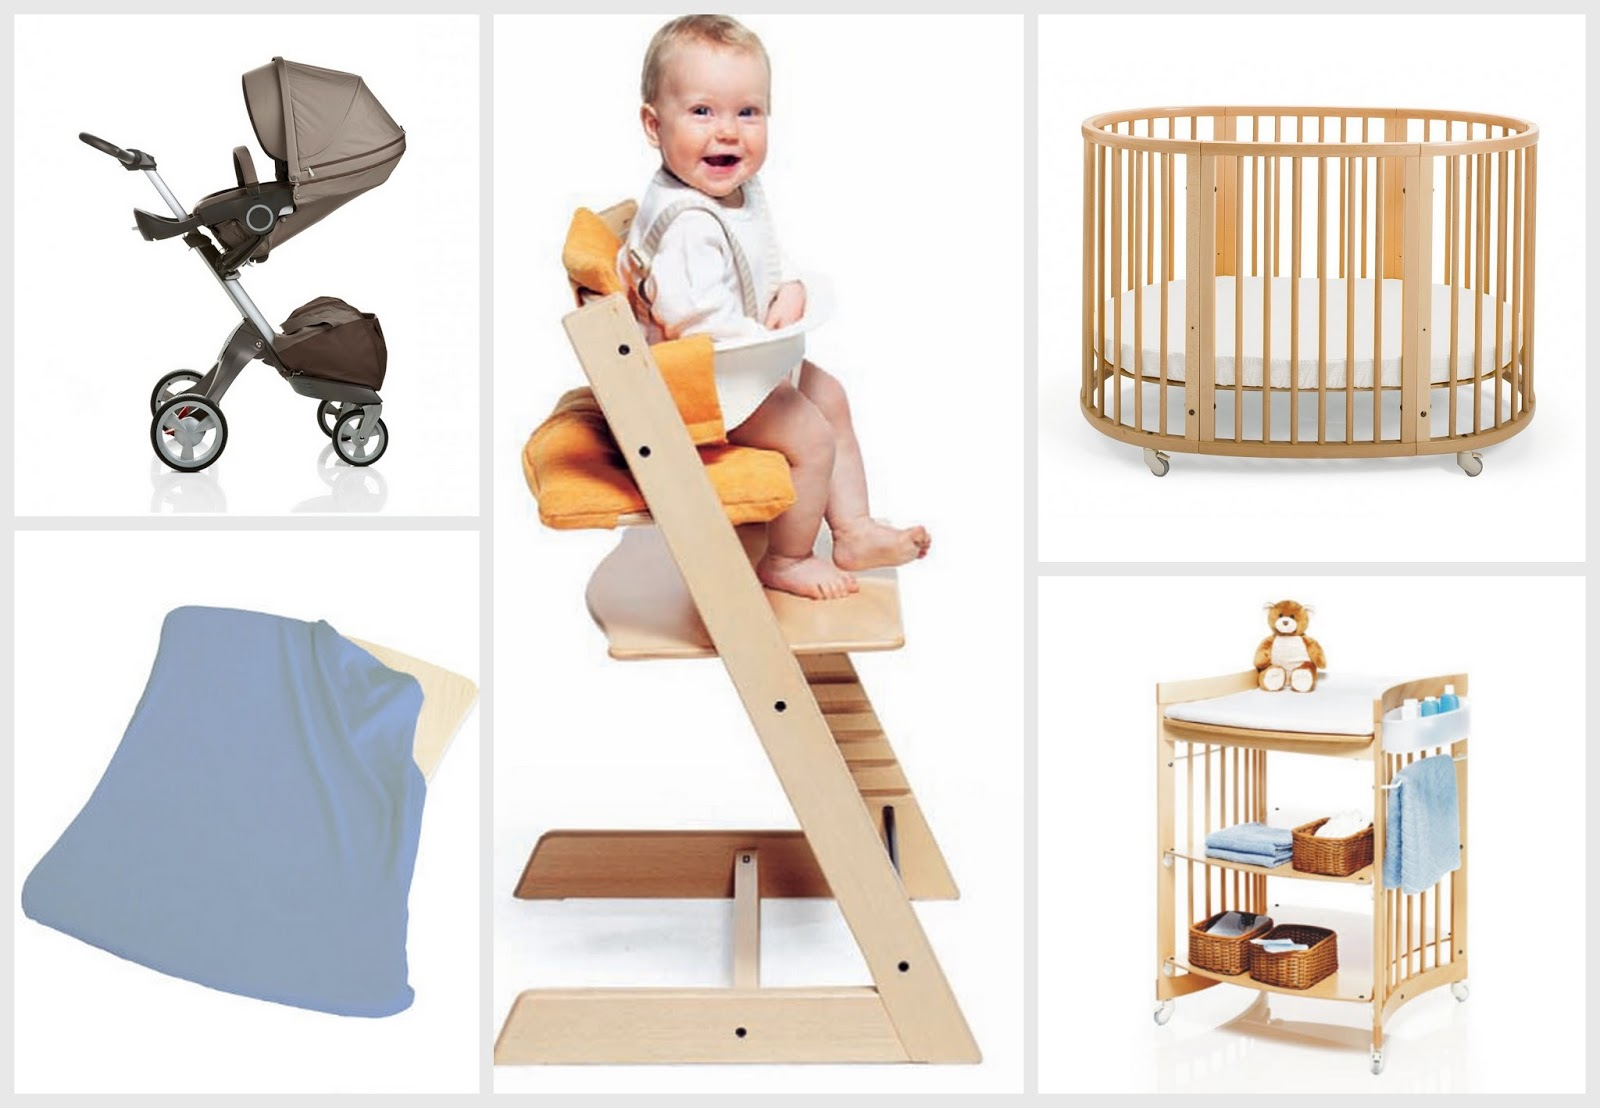 stokke high chair second hand covers wedding prices a secret for saving money on products the sandpit